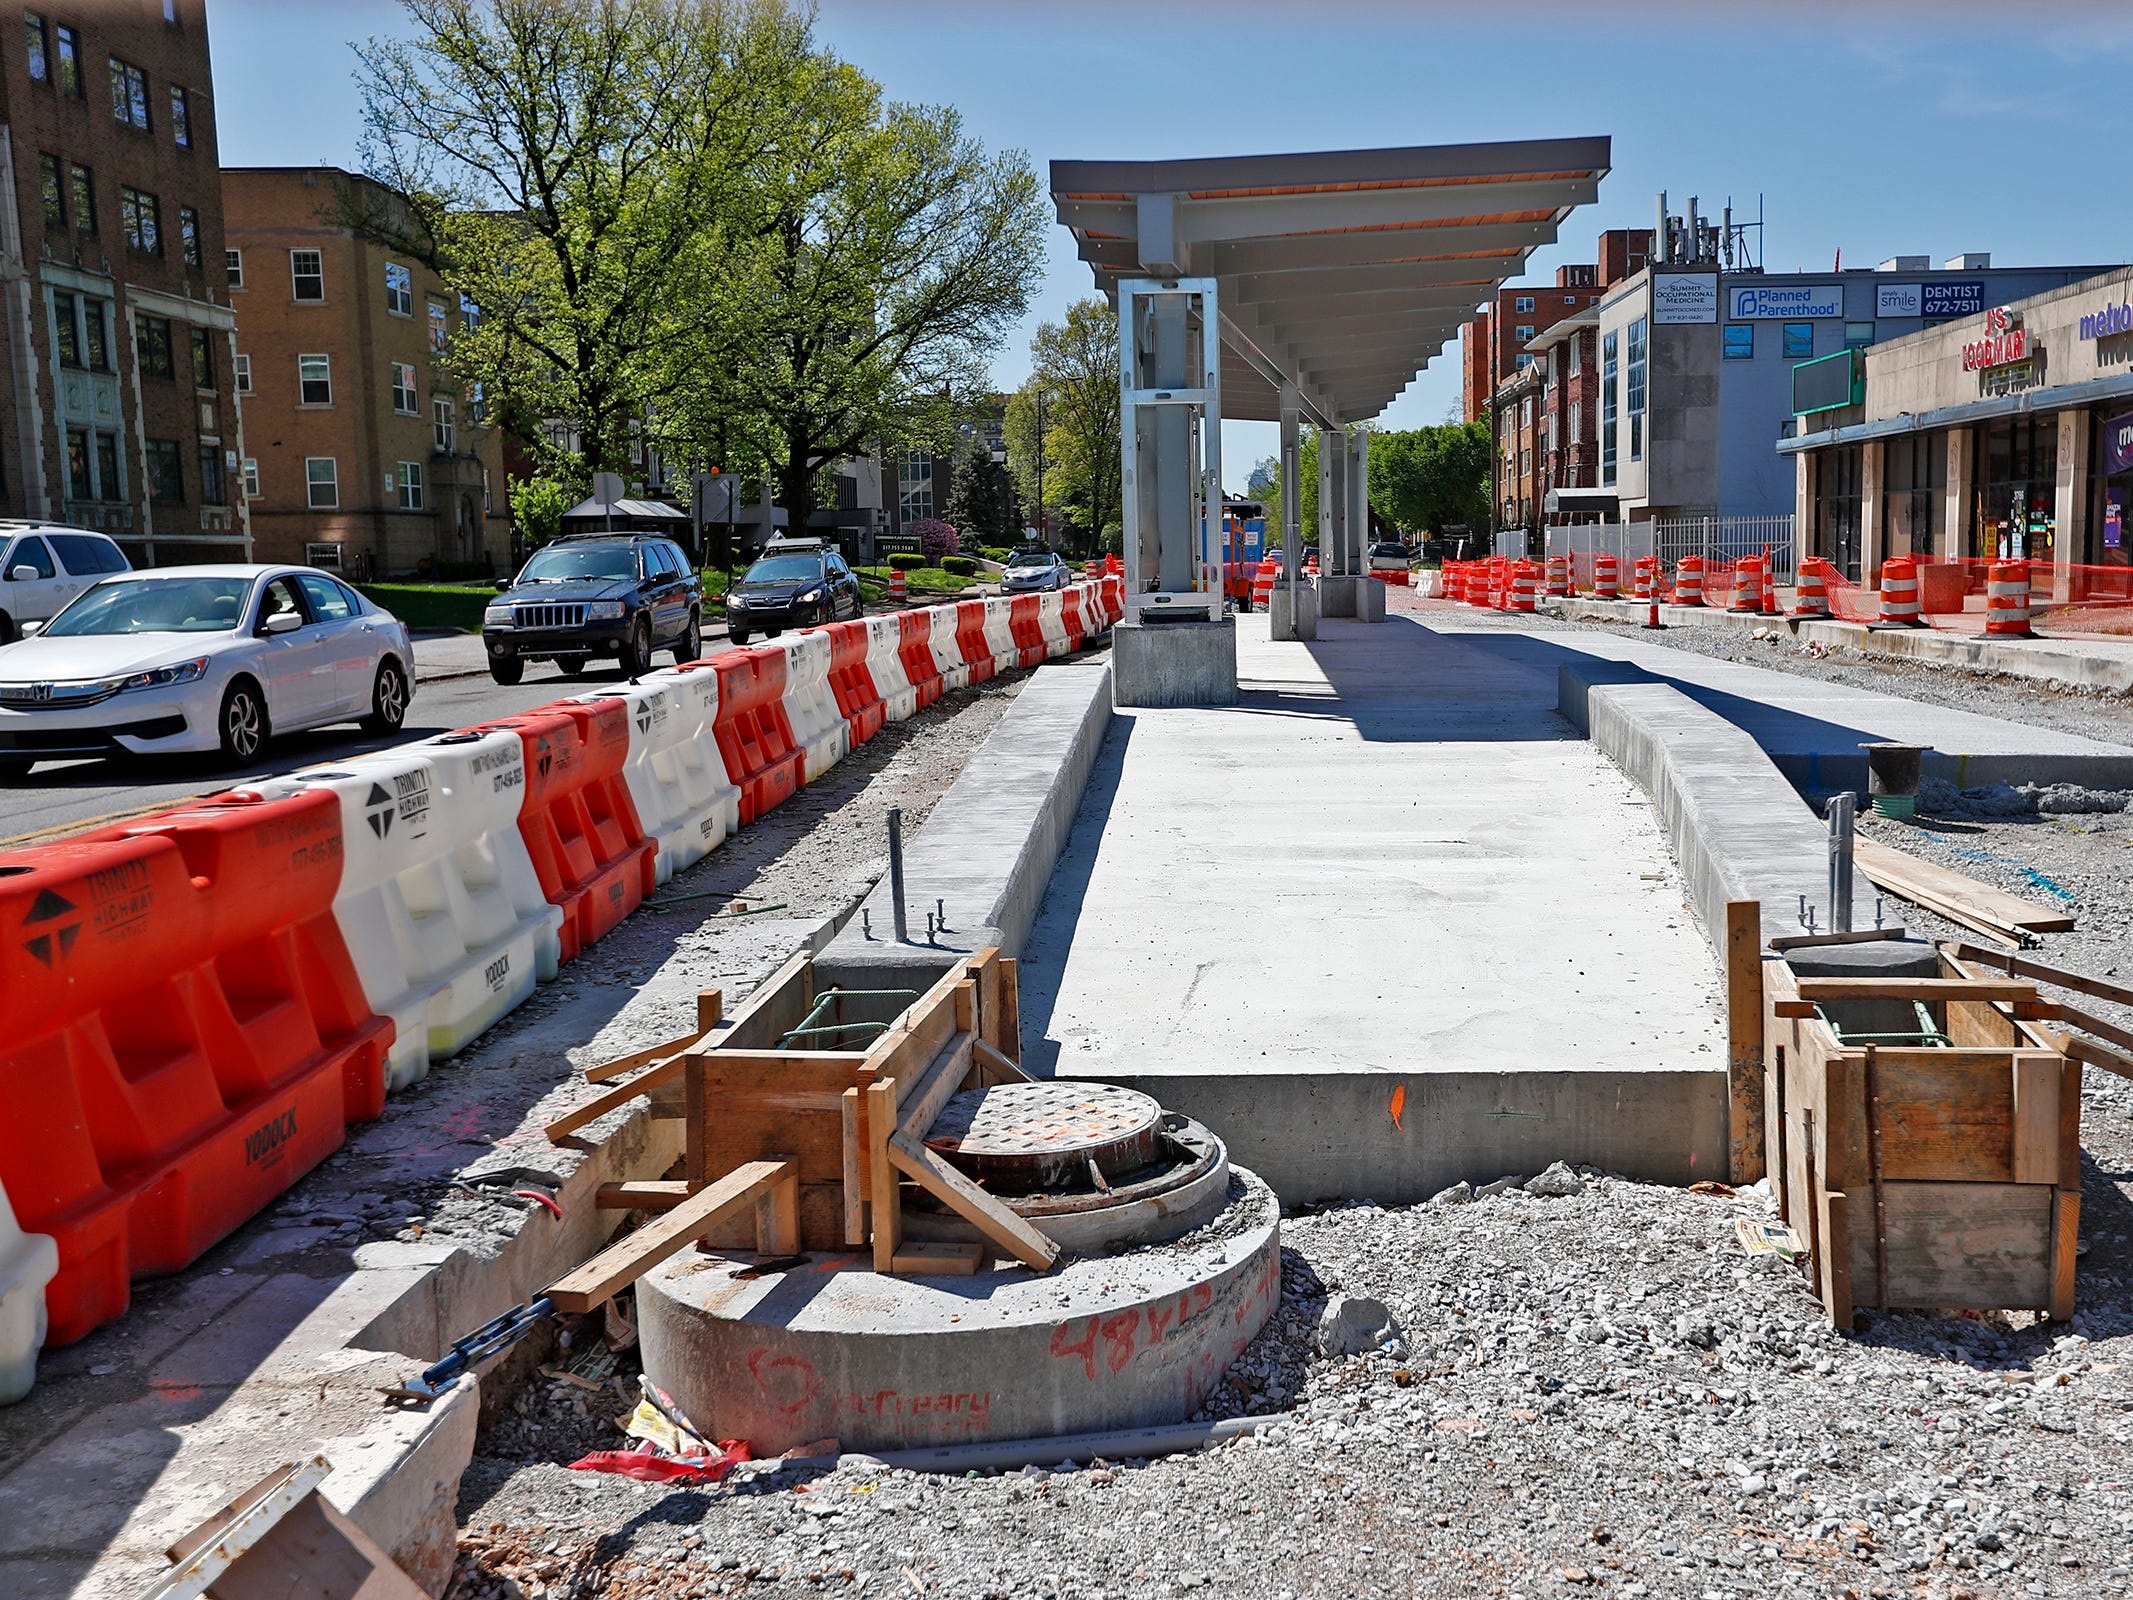 Red Line construction continues in Indianapolis, Sunday, May 5, 2019.  The City has updated the timeline when the Red Line Bus Rapid Transit system should open, which is later in 2019 summer.  This photo shows the station at 38th Street looking south on Meridian St.